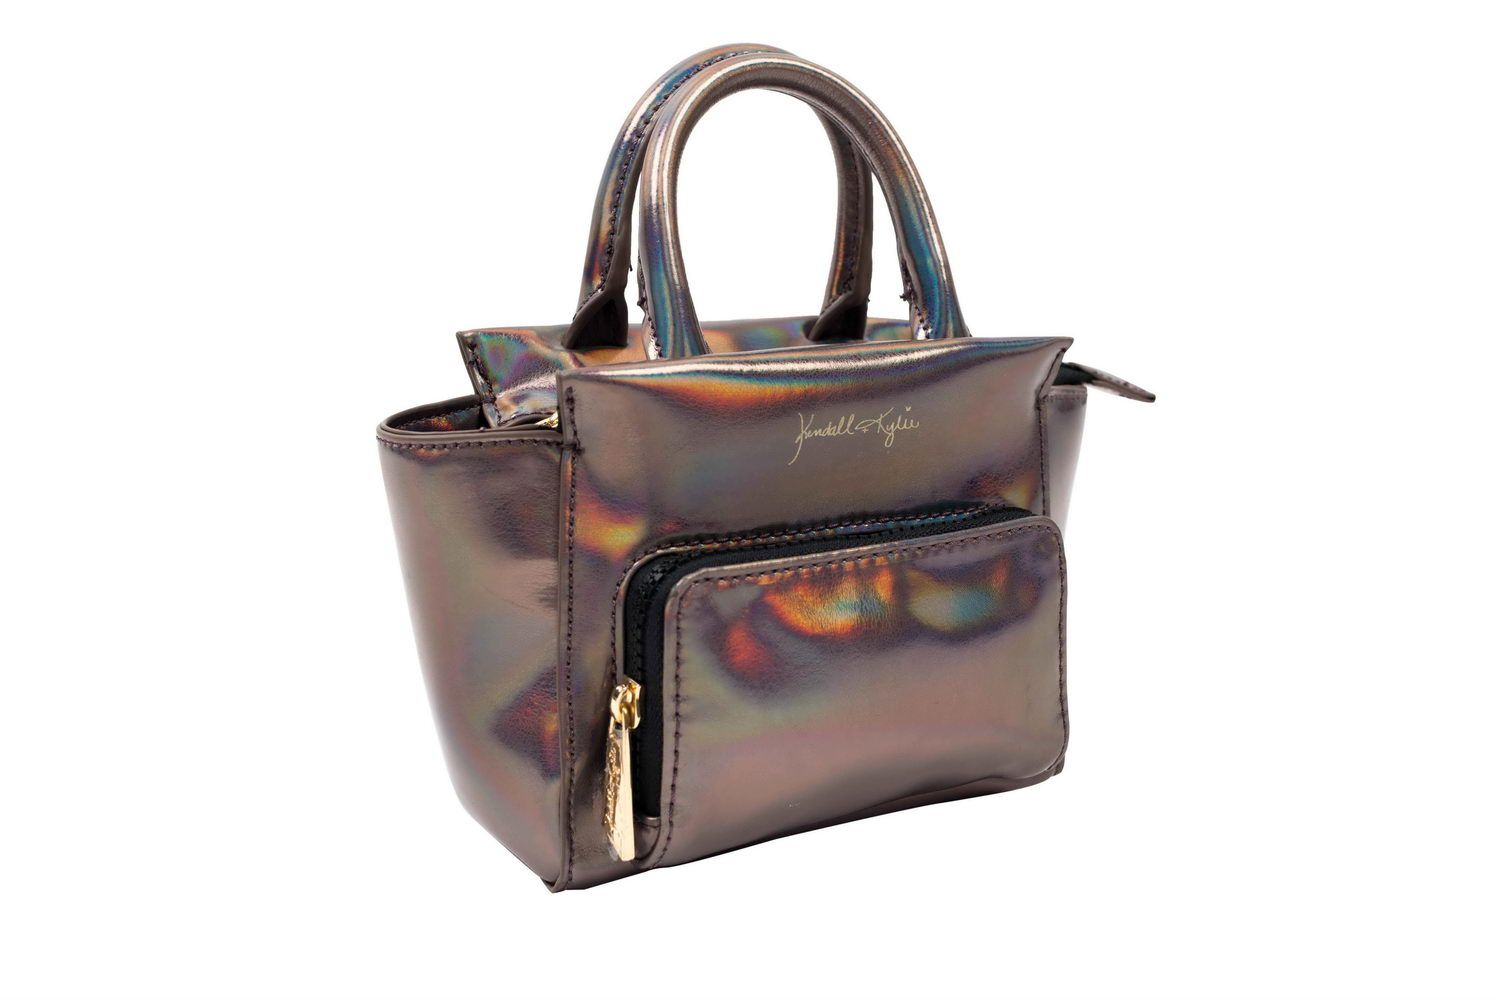 K+K Small Bag (6026) - PVP 34,95__resize